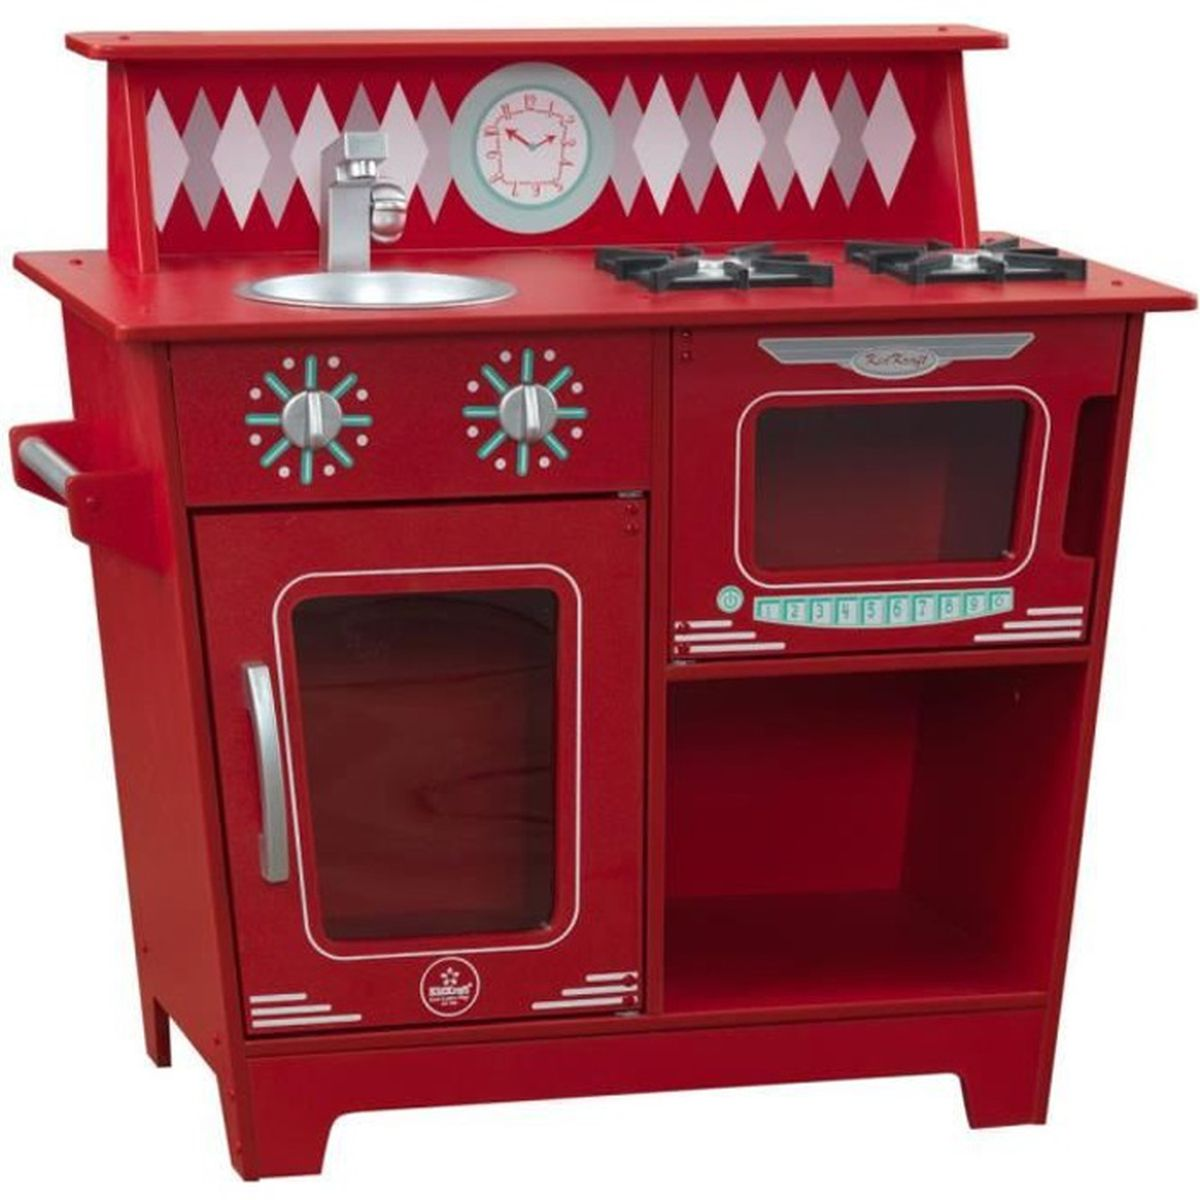 cuisine enfant rouge achat vente dinette cuisine cdiscount. Black Bedroom Furniture Sets. Home Design Ideas